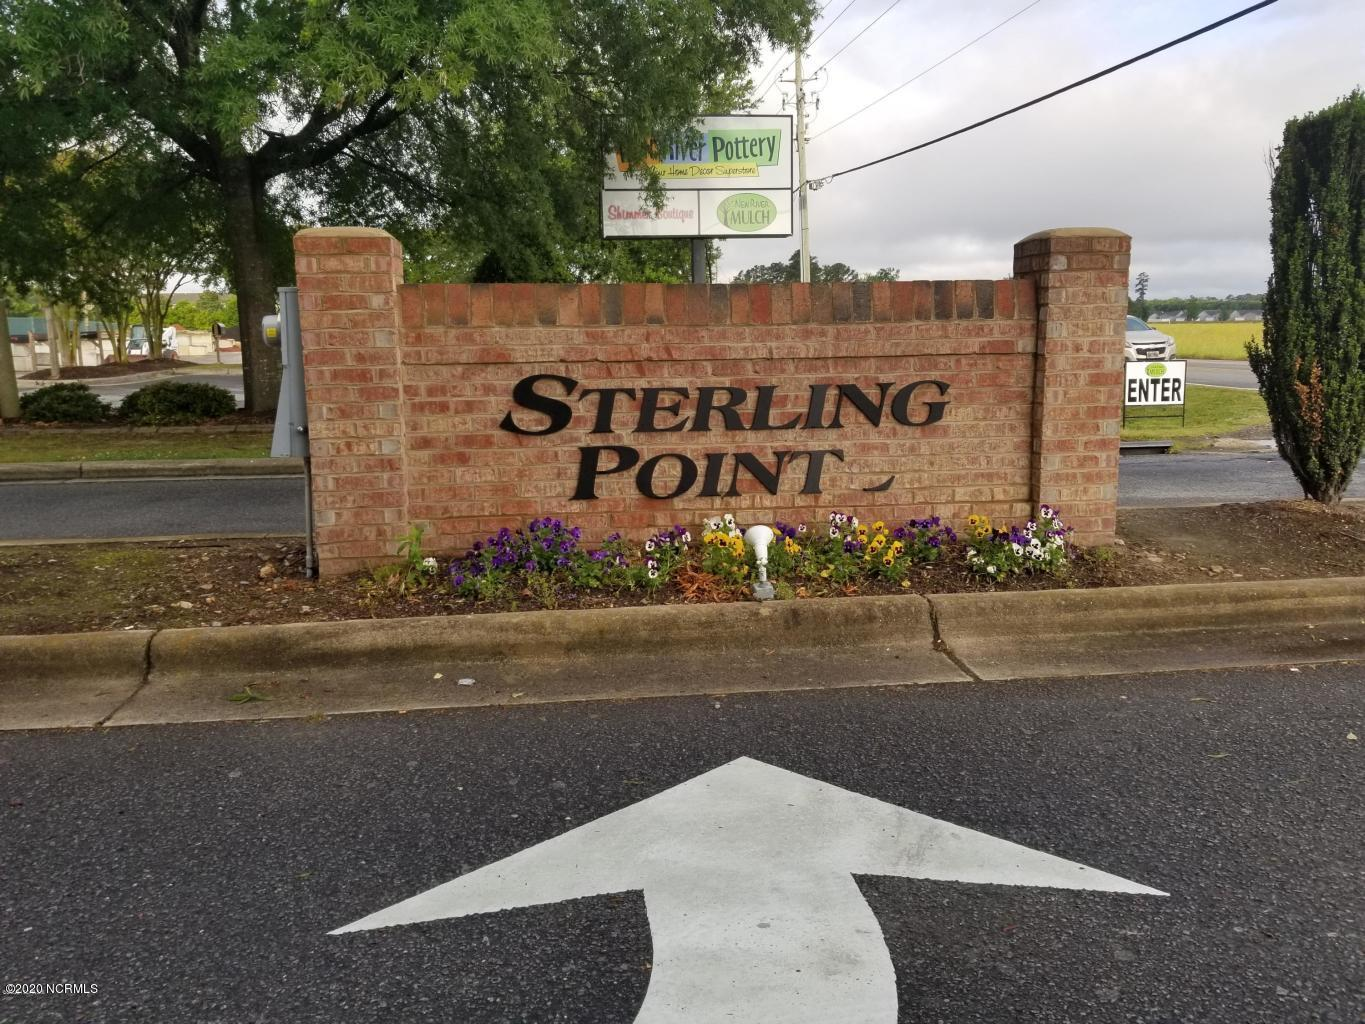 3955 Sterling Pointe Drive, Winterville, North Carolina 28590, 2 Bedrooms Bedrooms, 6 Rooms Rooms,1 BathroomBathrooms,Townhouse,For sale,Sterling Pointe,100219042